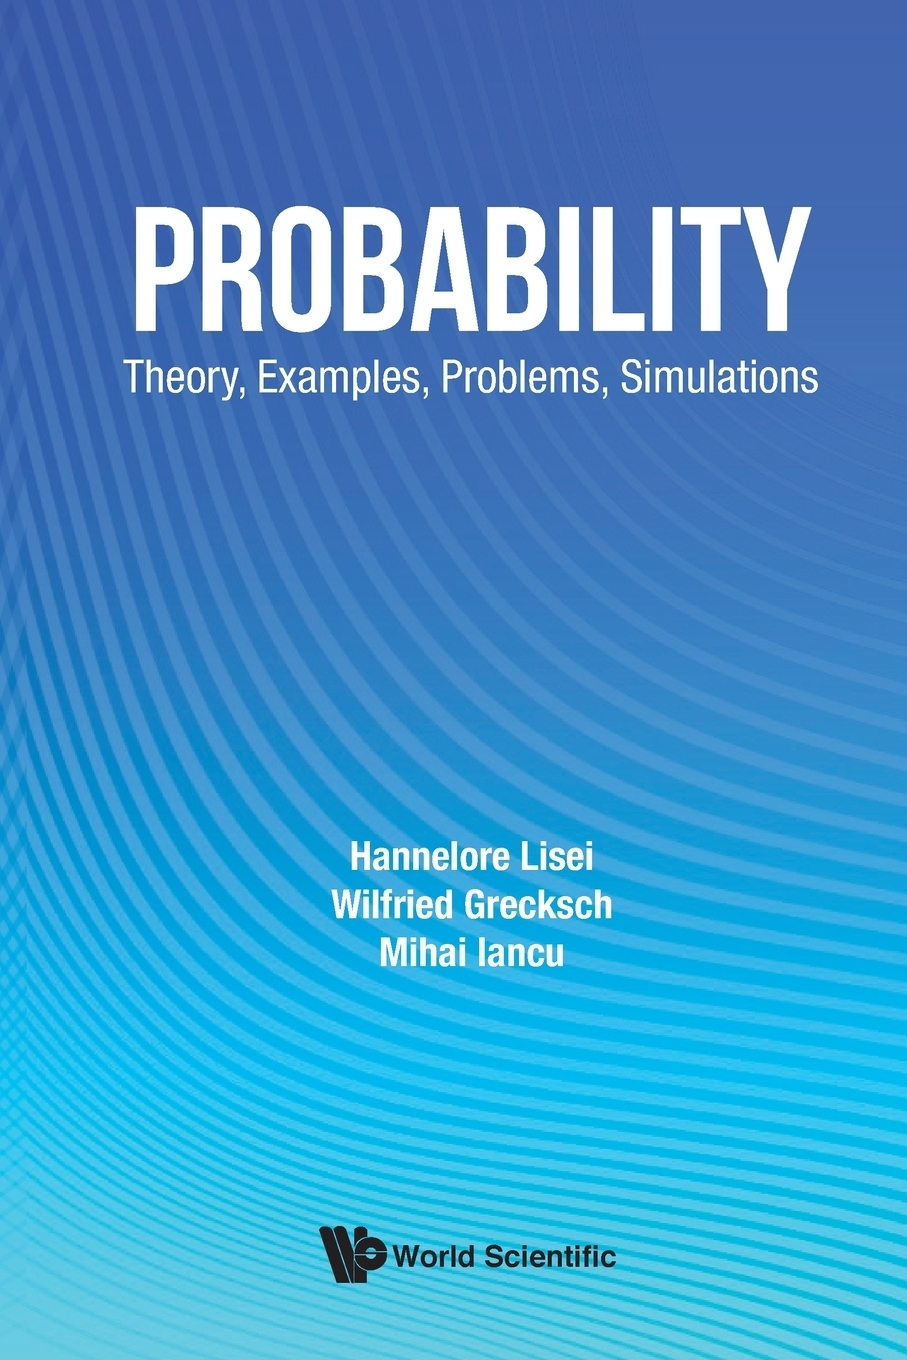 Hannelore Lisei, Wilfried Grecksch, Mihai Iancu. Probability. Theory, Examples, Problems, Simulations